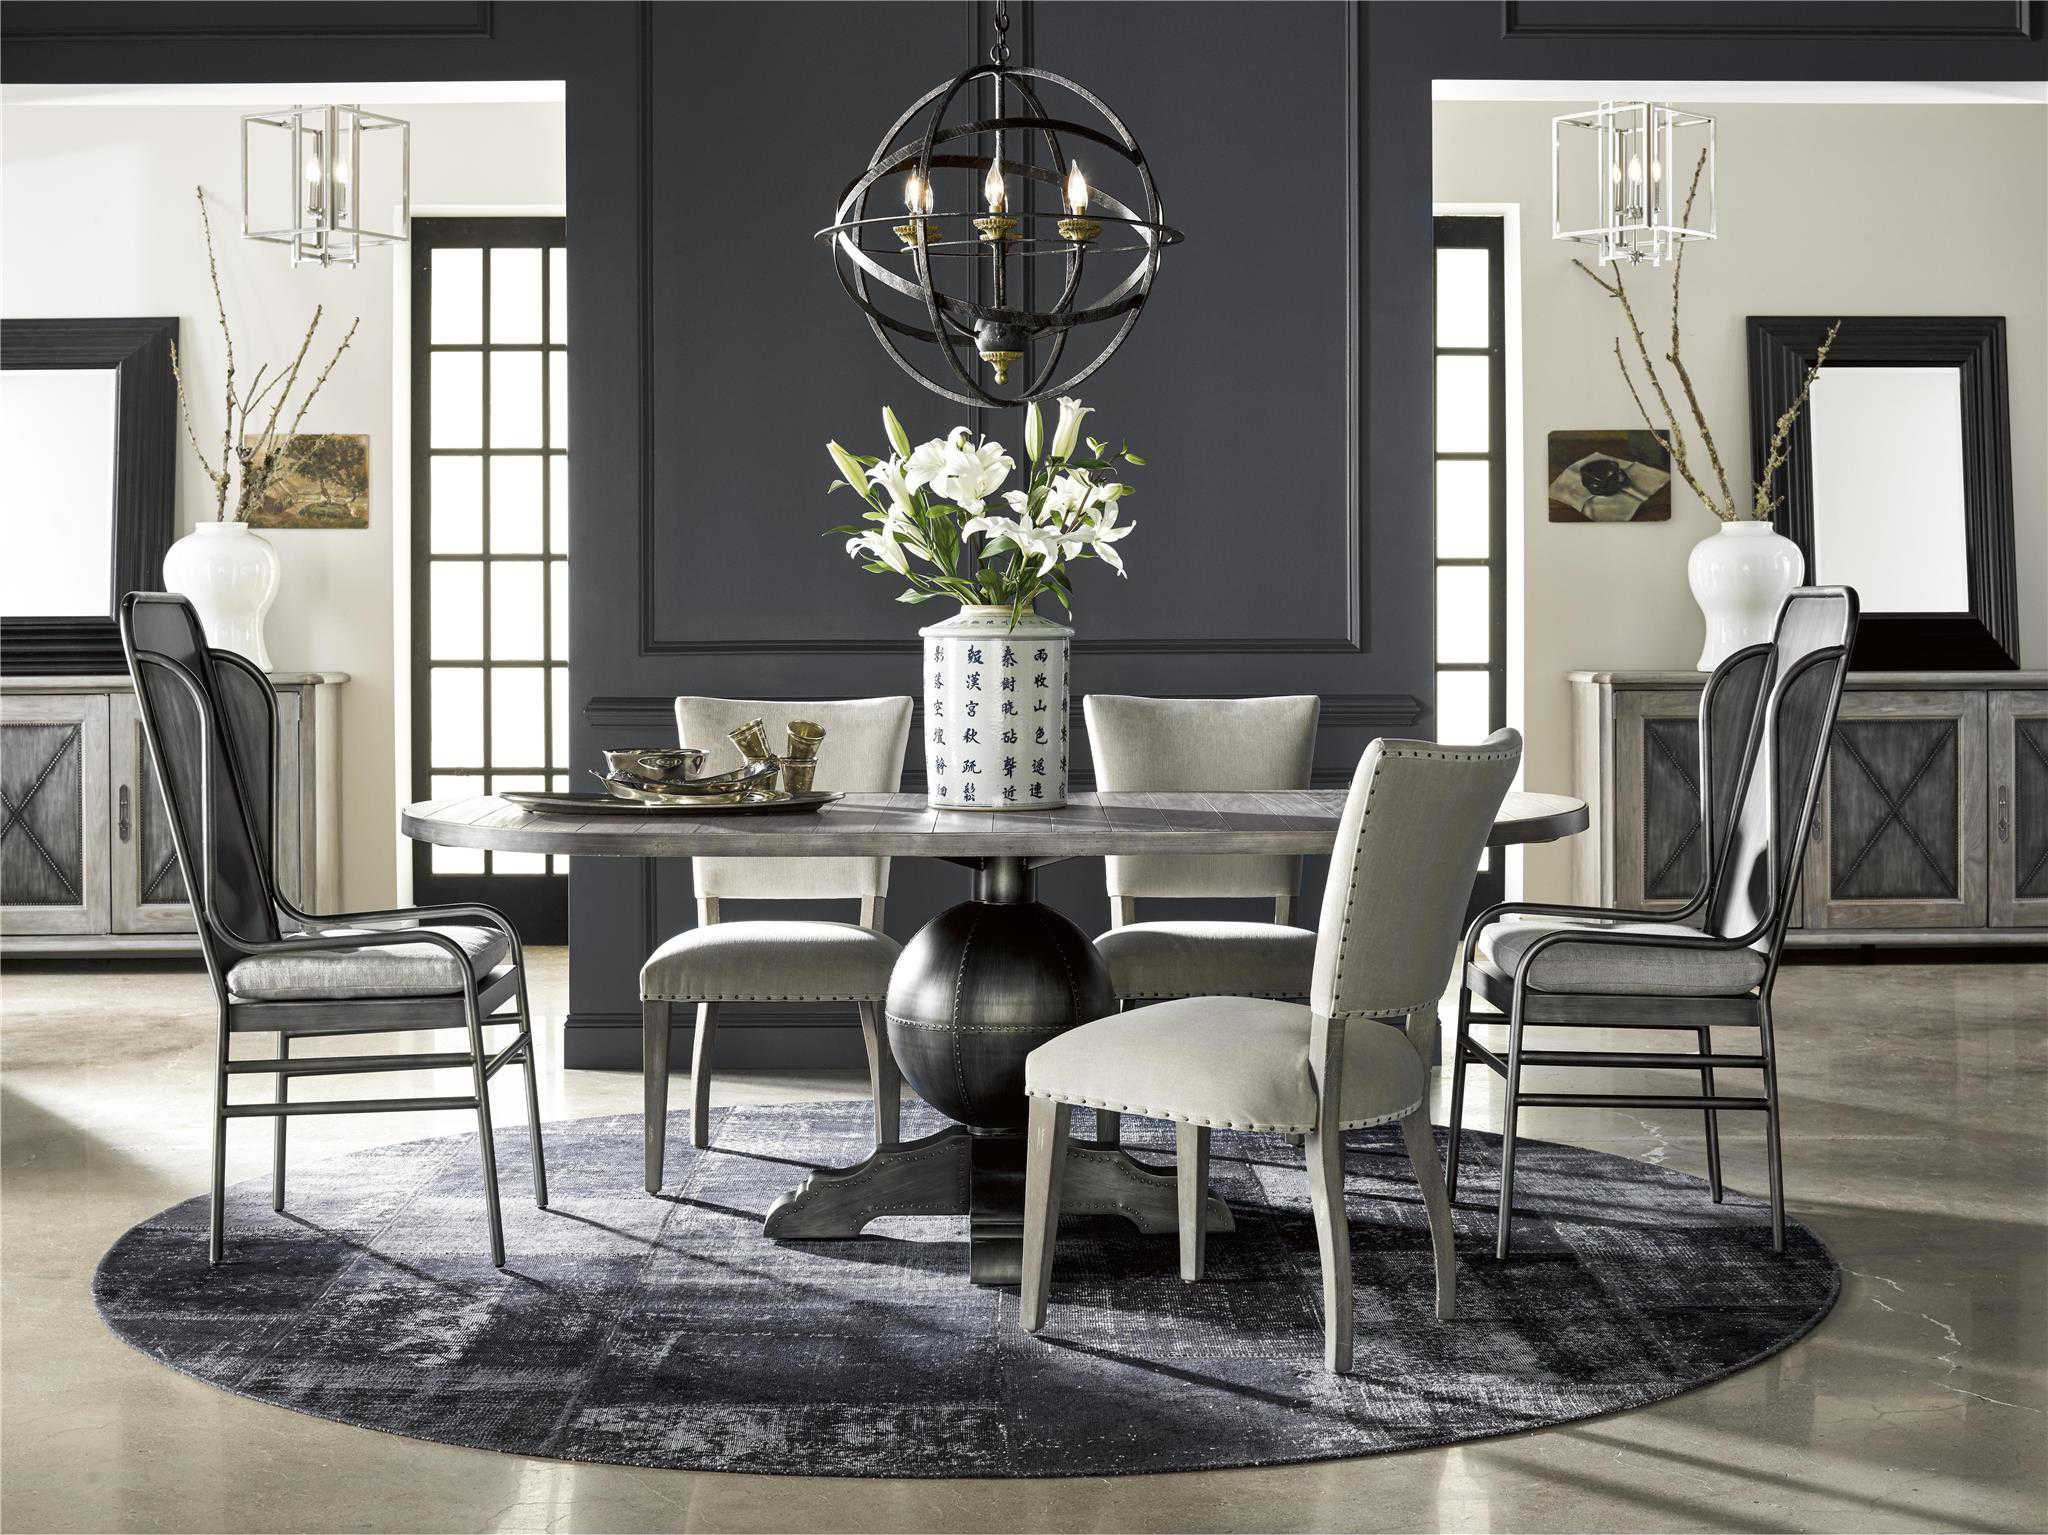 Universal furniture curated 84 39 39 l x 40 39 39 w oval greystone for Top rated dining room tables